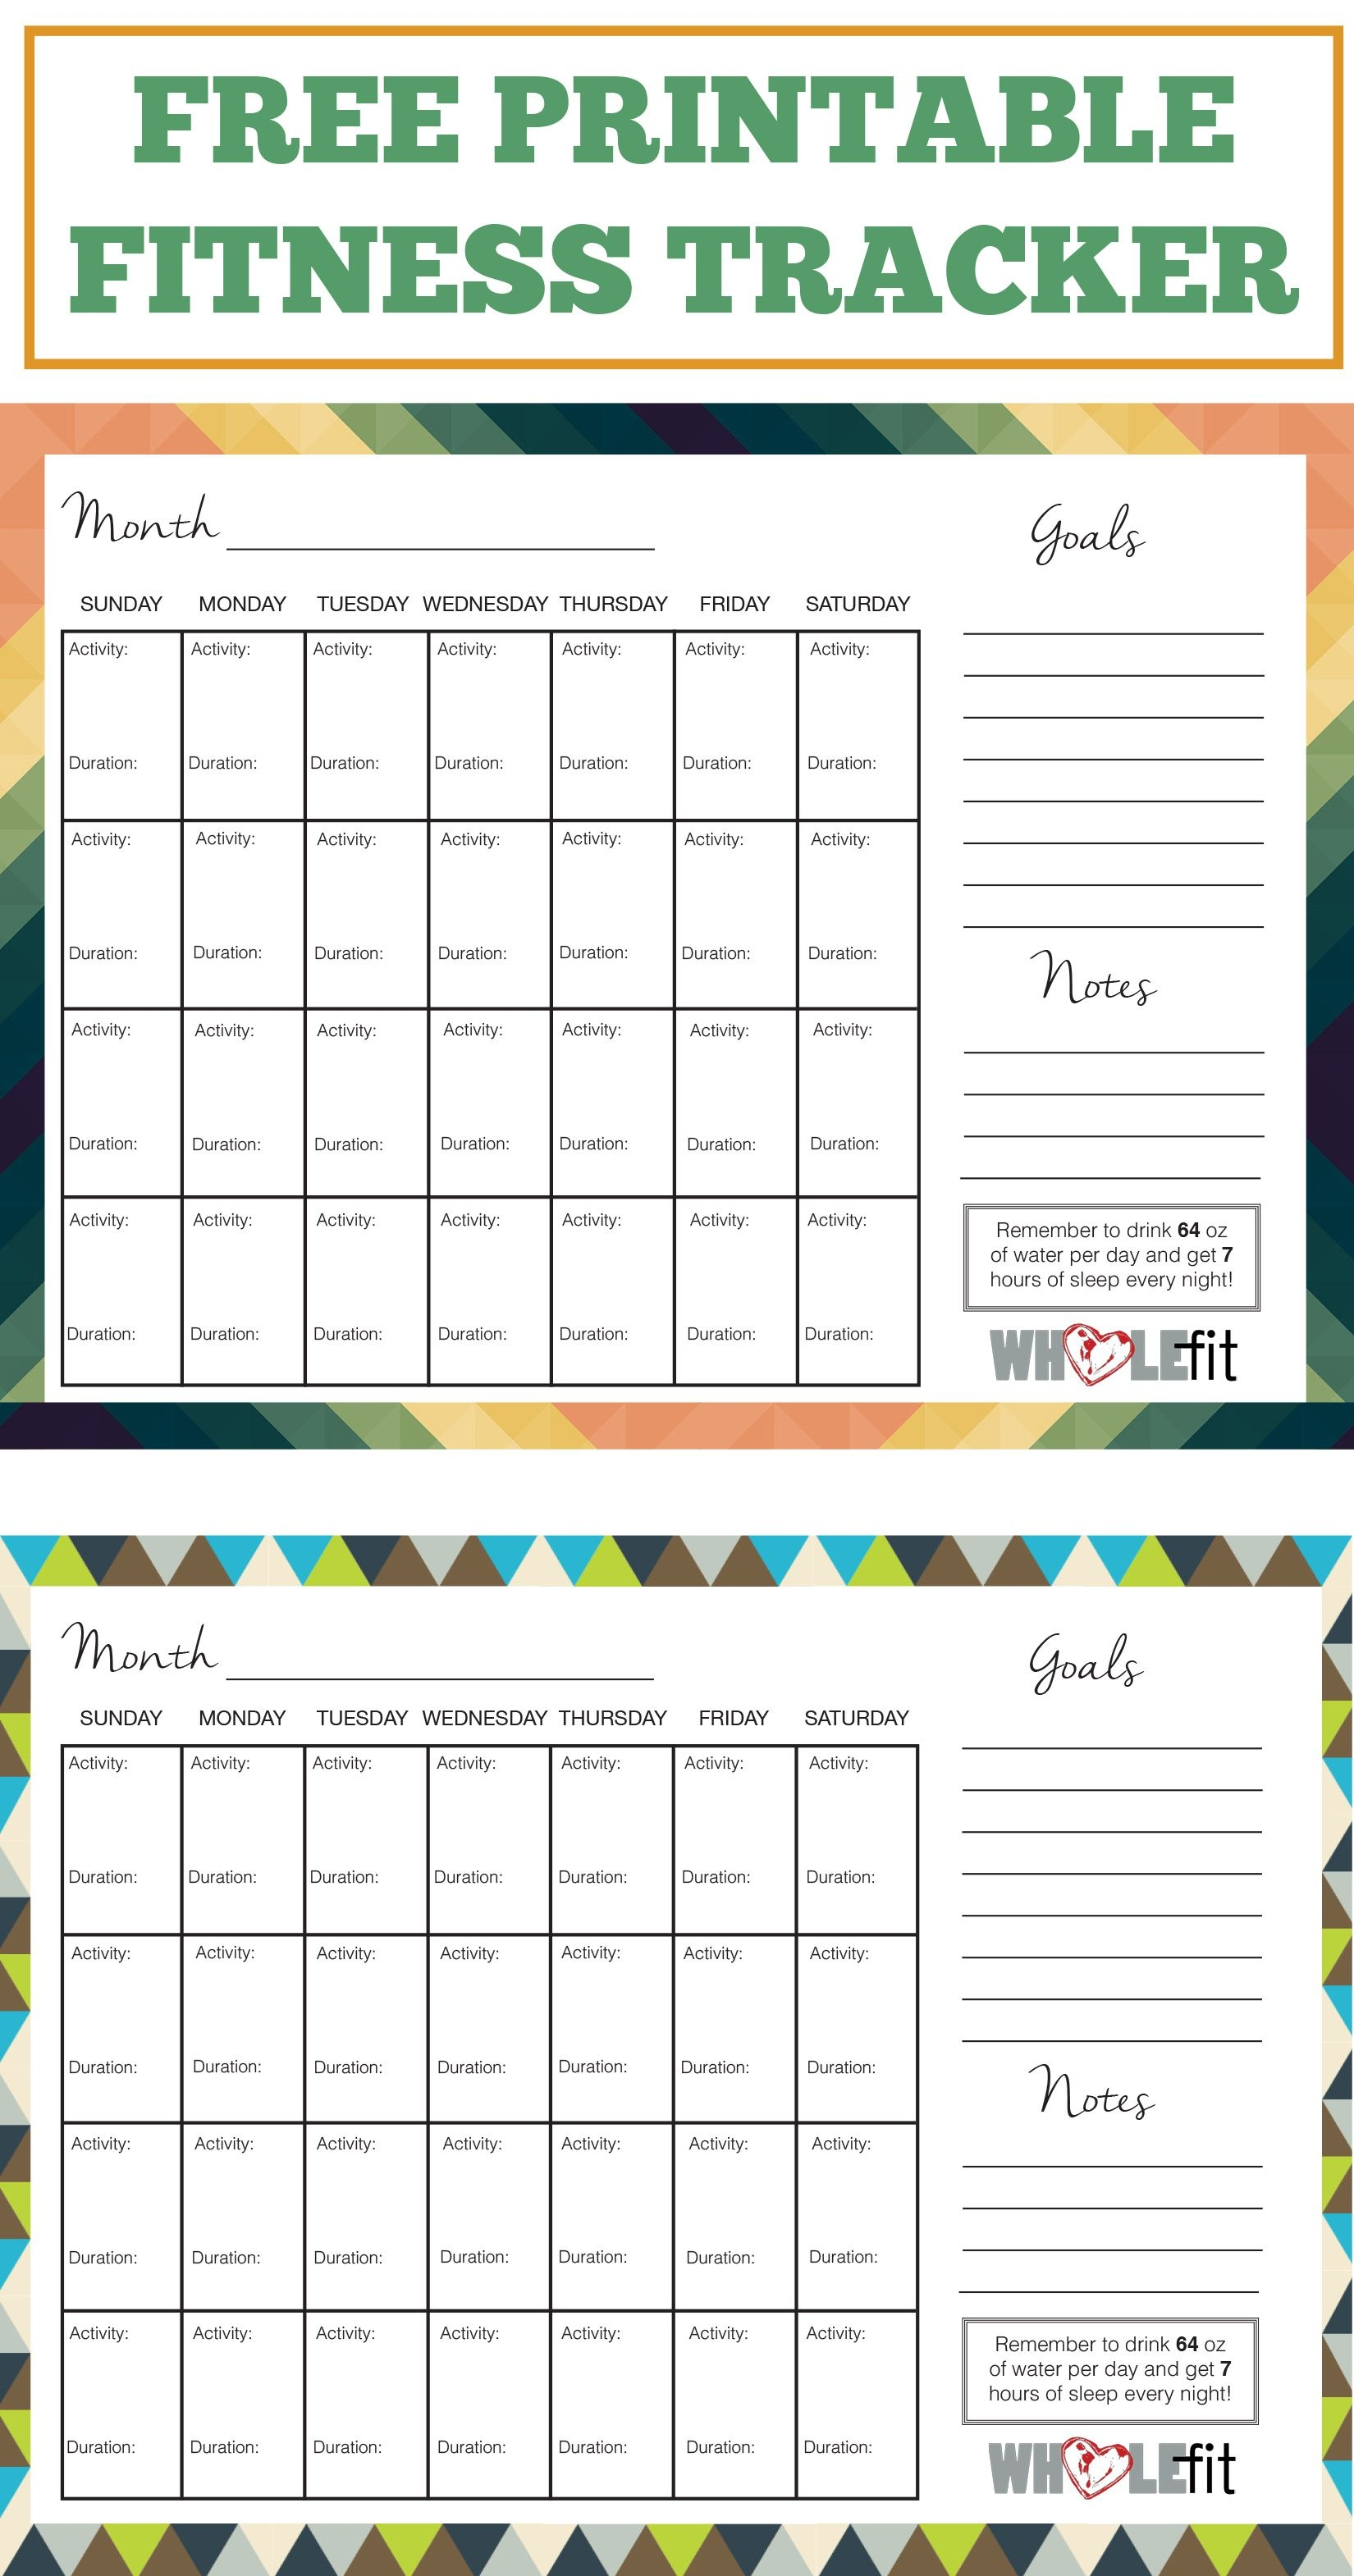 Track Your Progress With These Free Printable Fitness Trackers!   My - Free Printable Fitness Tracker